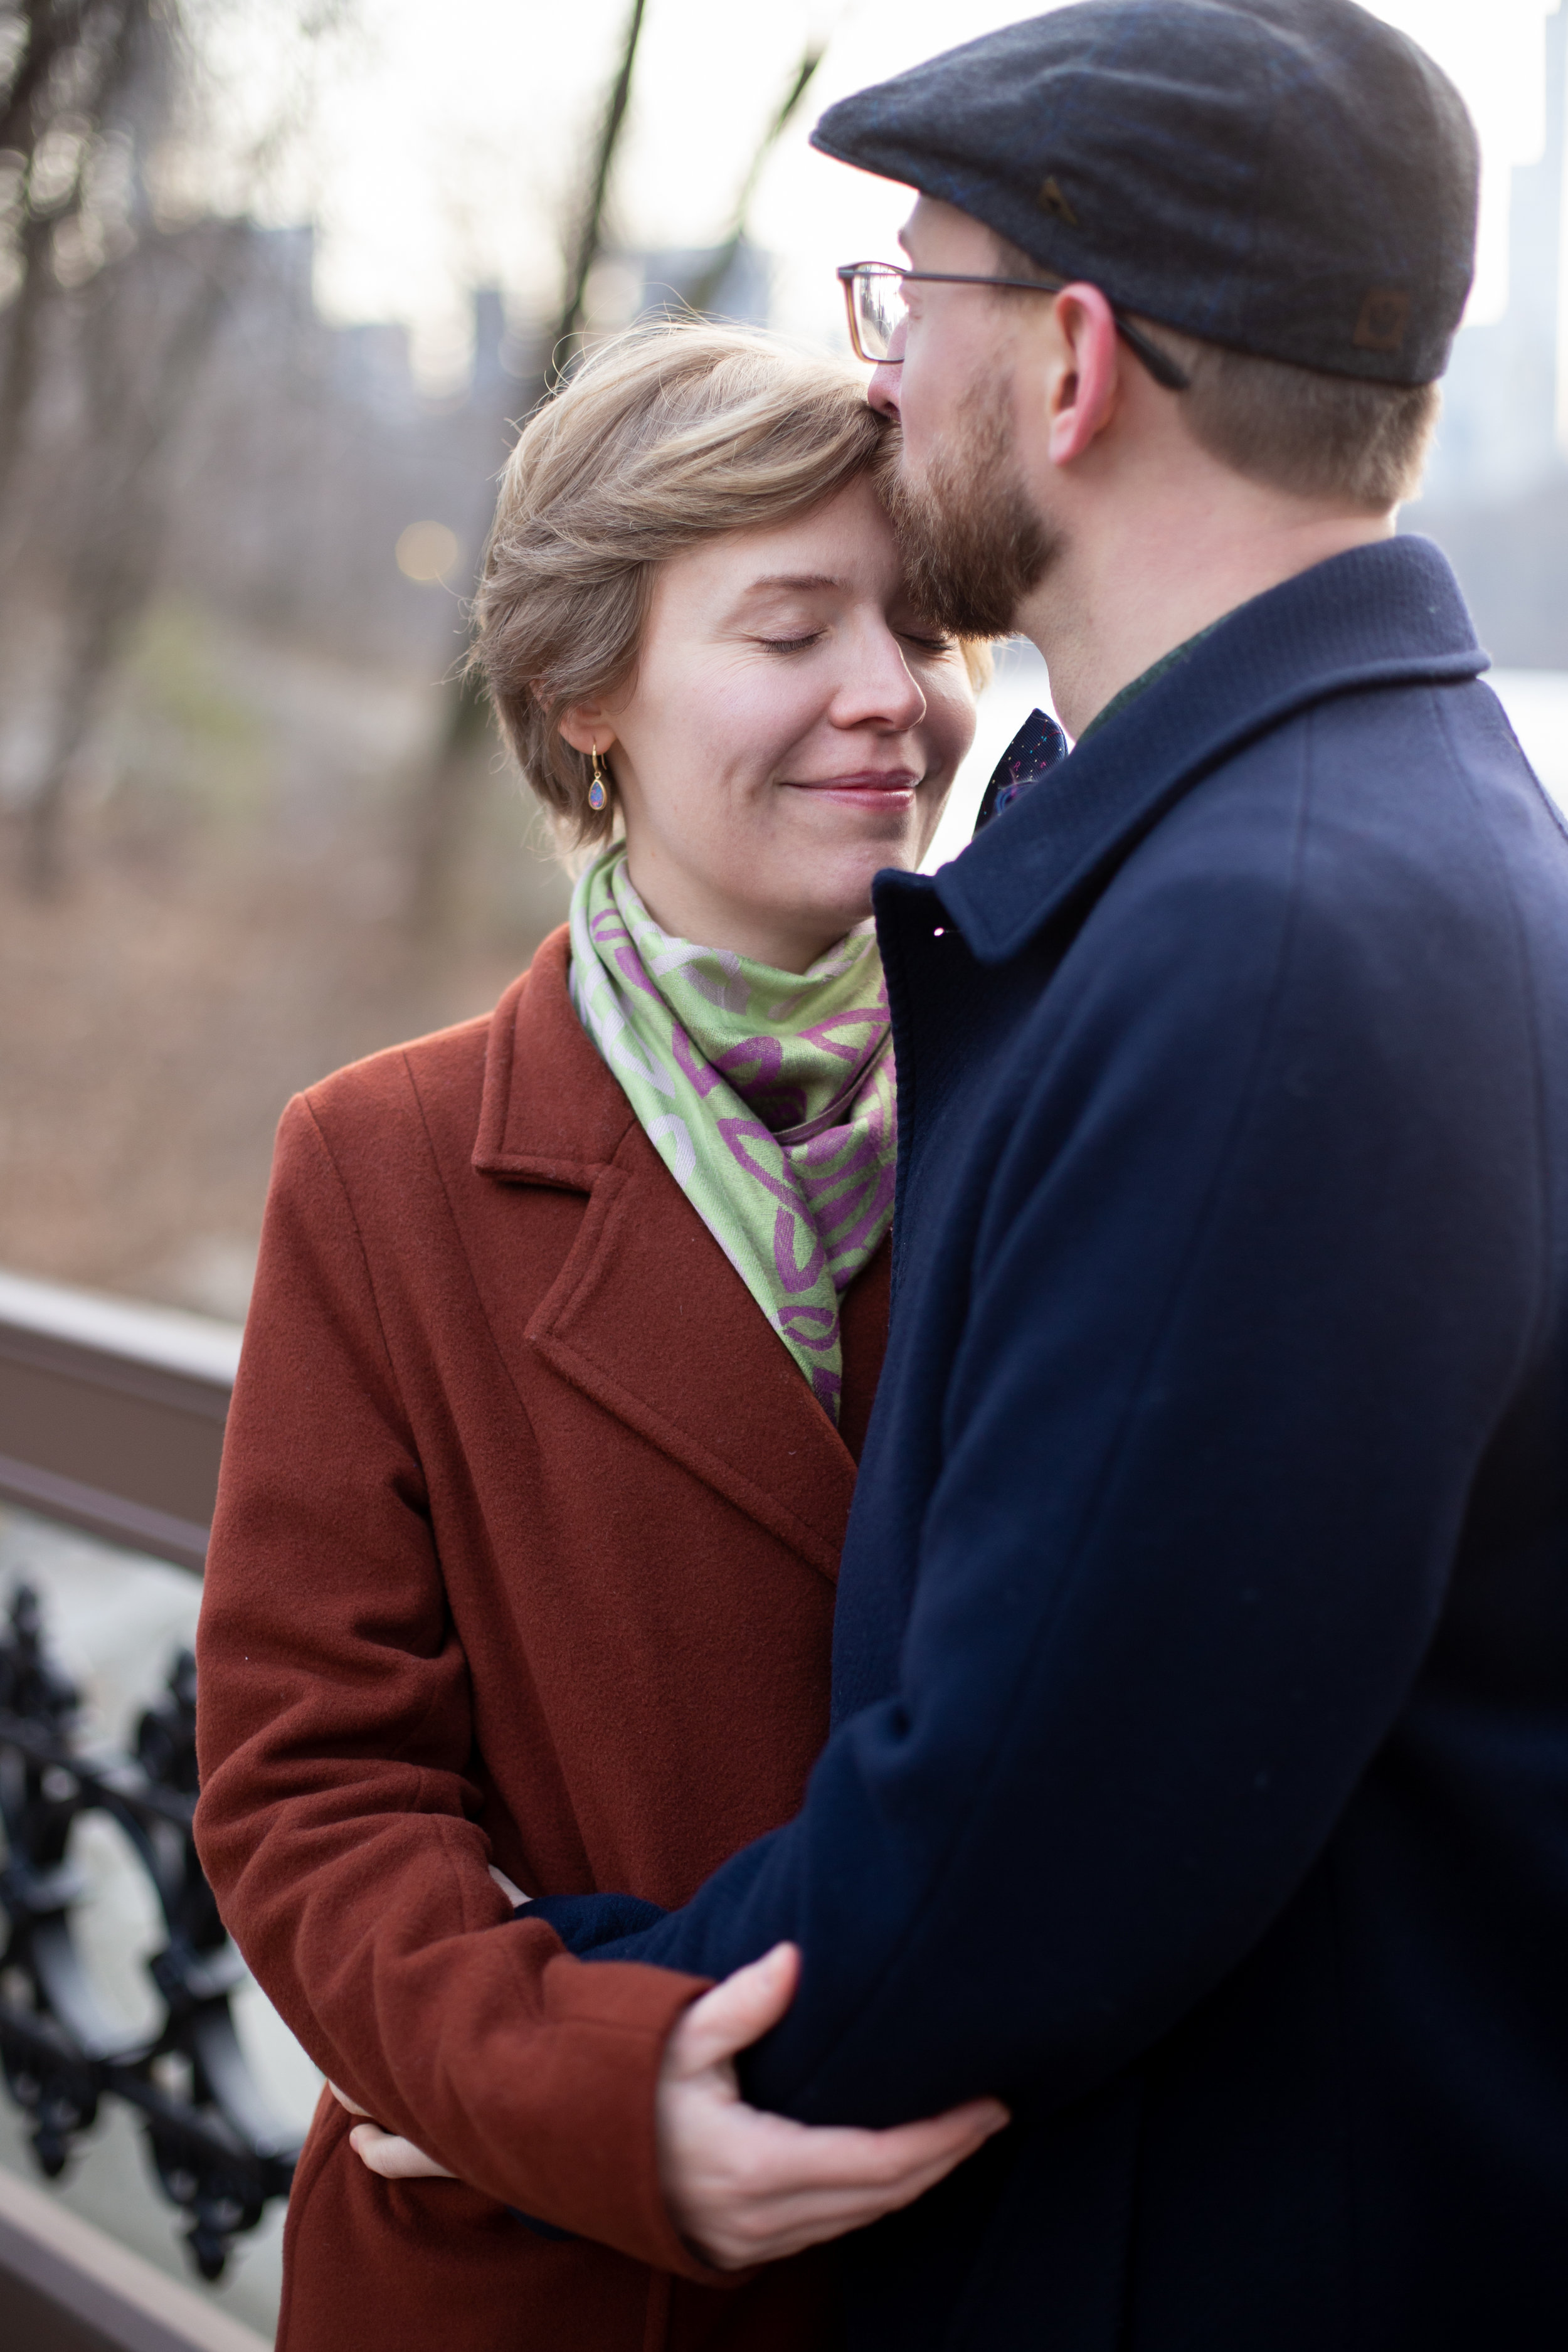 Kate-Alison-Photography-Central-Park-Winter-Engagement-Session-Paul-Chelsea-34.jpg